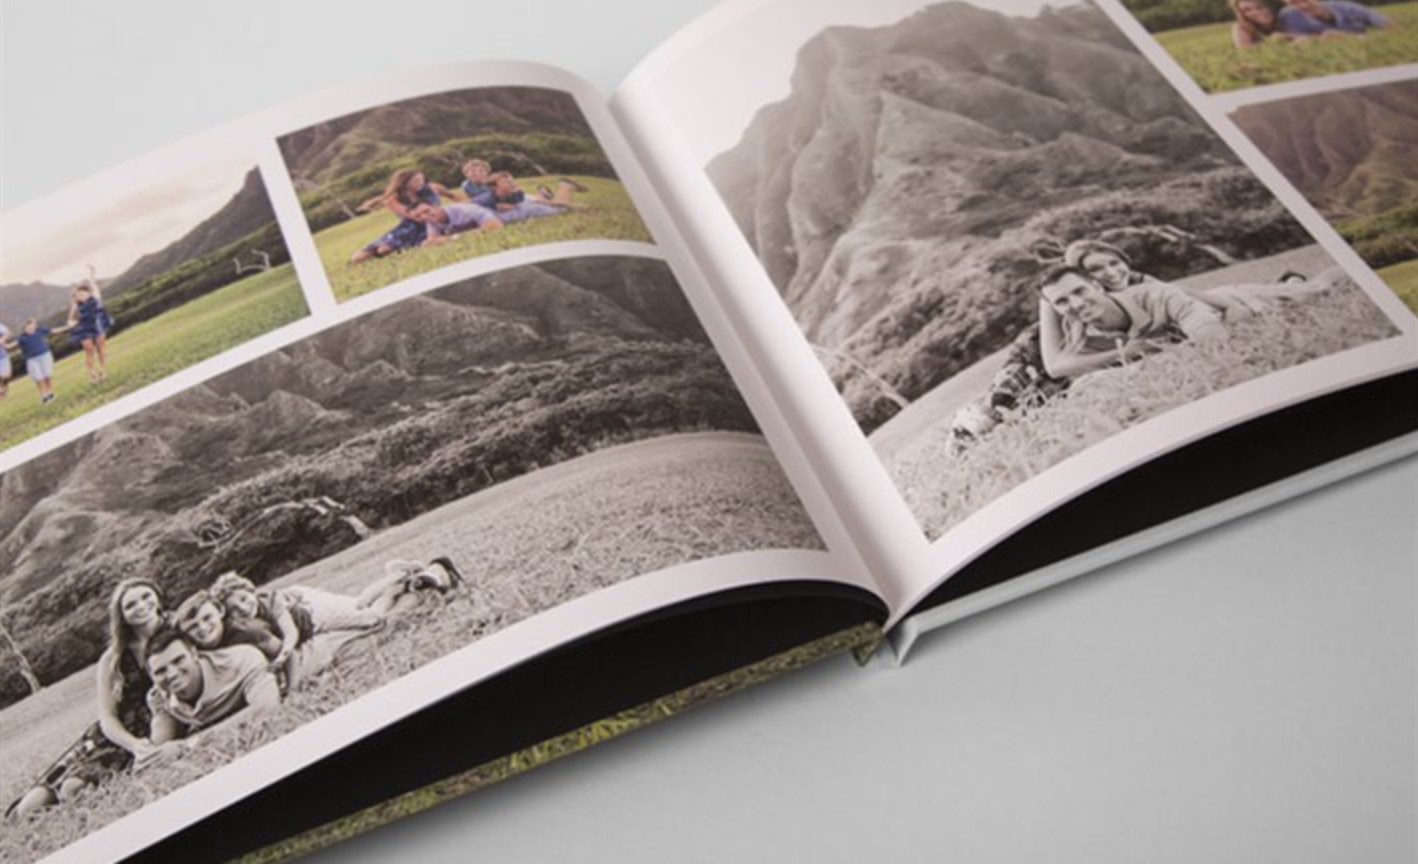 8x10 linen ALBUM:  {$300}*   *10 pages/ 20 spreads   [20-25 images;$5per additional image  ]